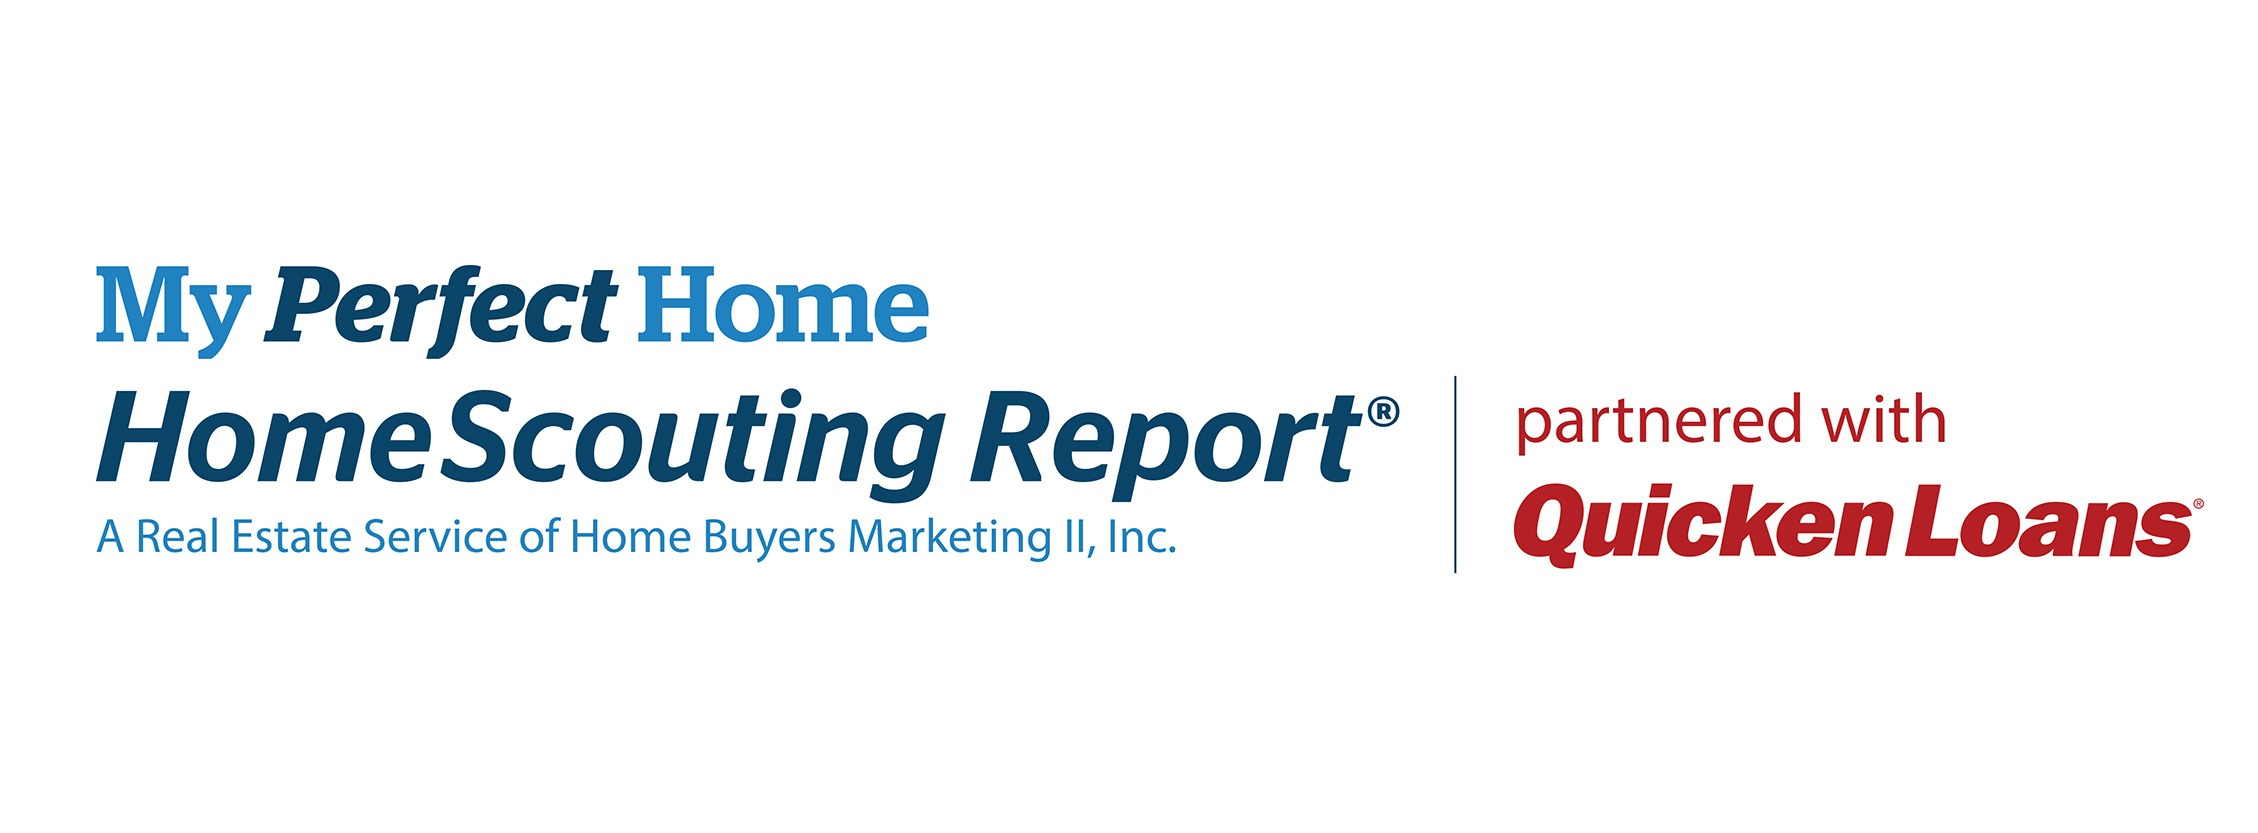 Use MyPerfectHome.com to Find Your Perfect Home - Quicken Loans Zing Blog